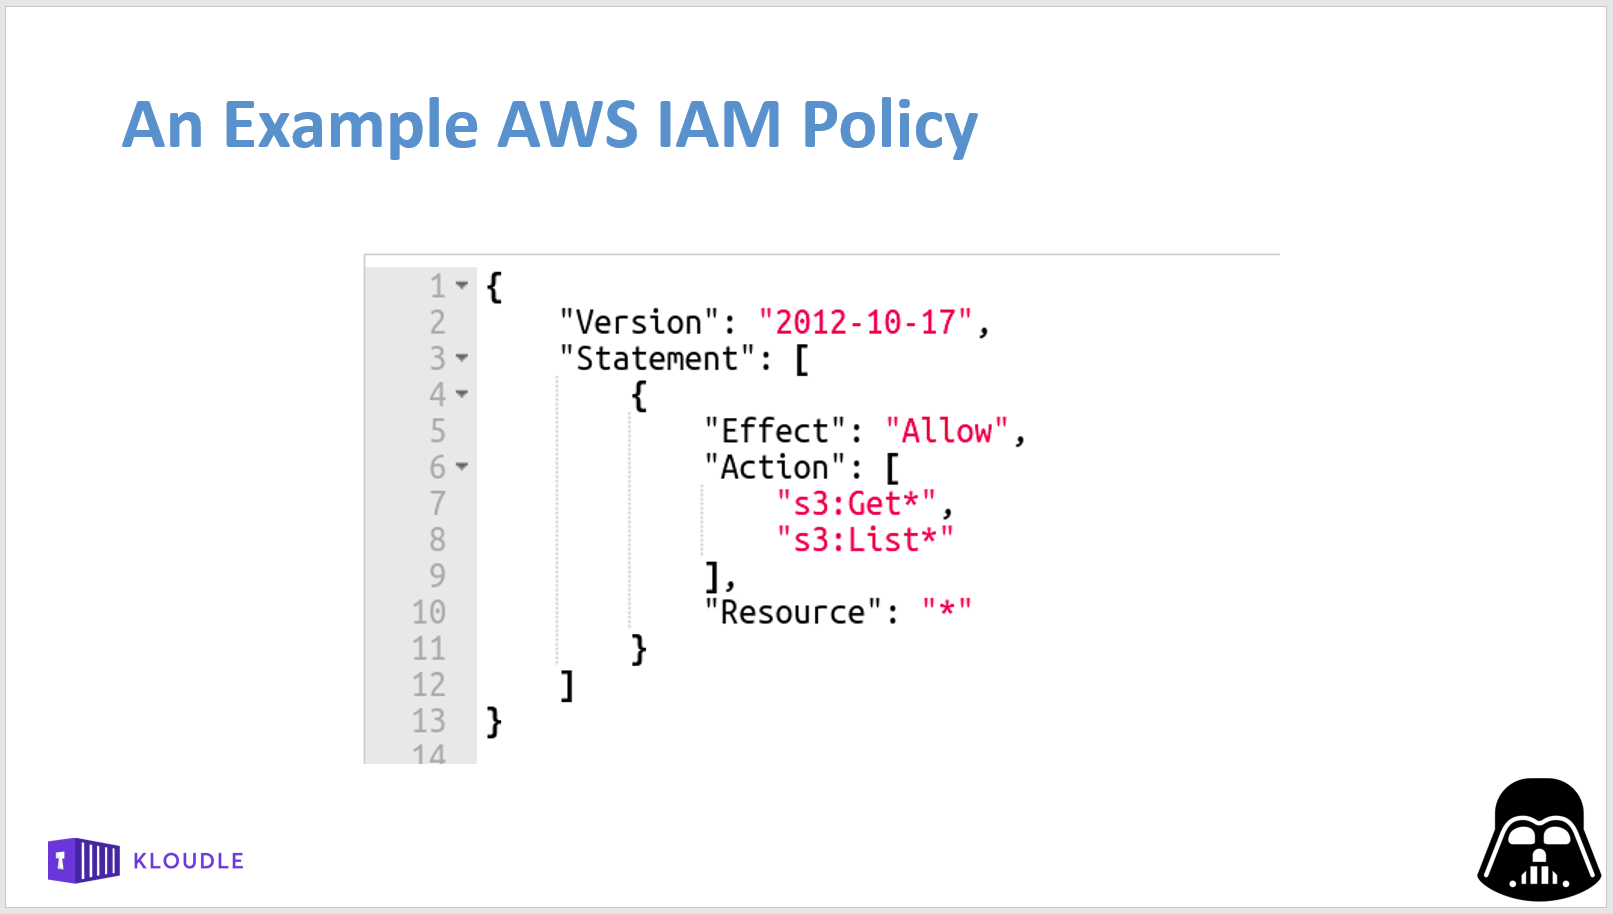 Example of an AWS IAM policy